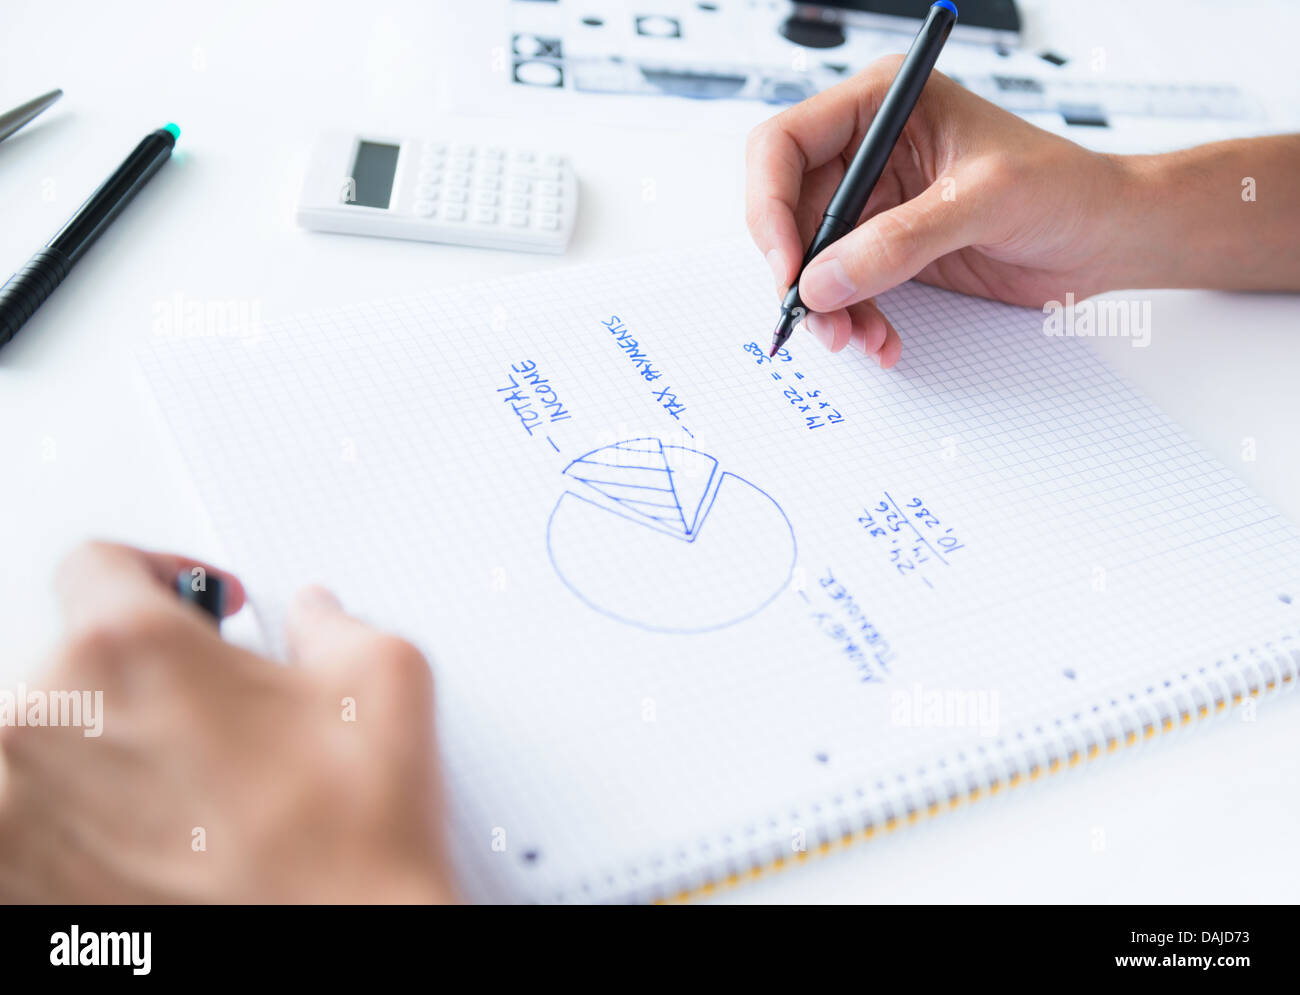 Person sitting at the desk, calculating home earnings and drawing circular diagram with numbers - Stock Image